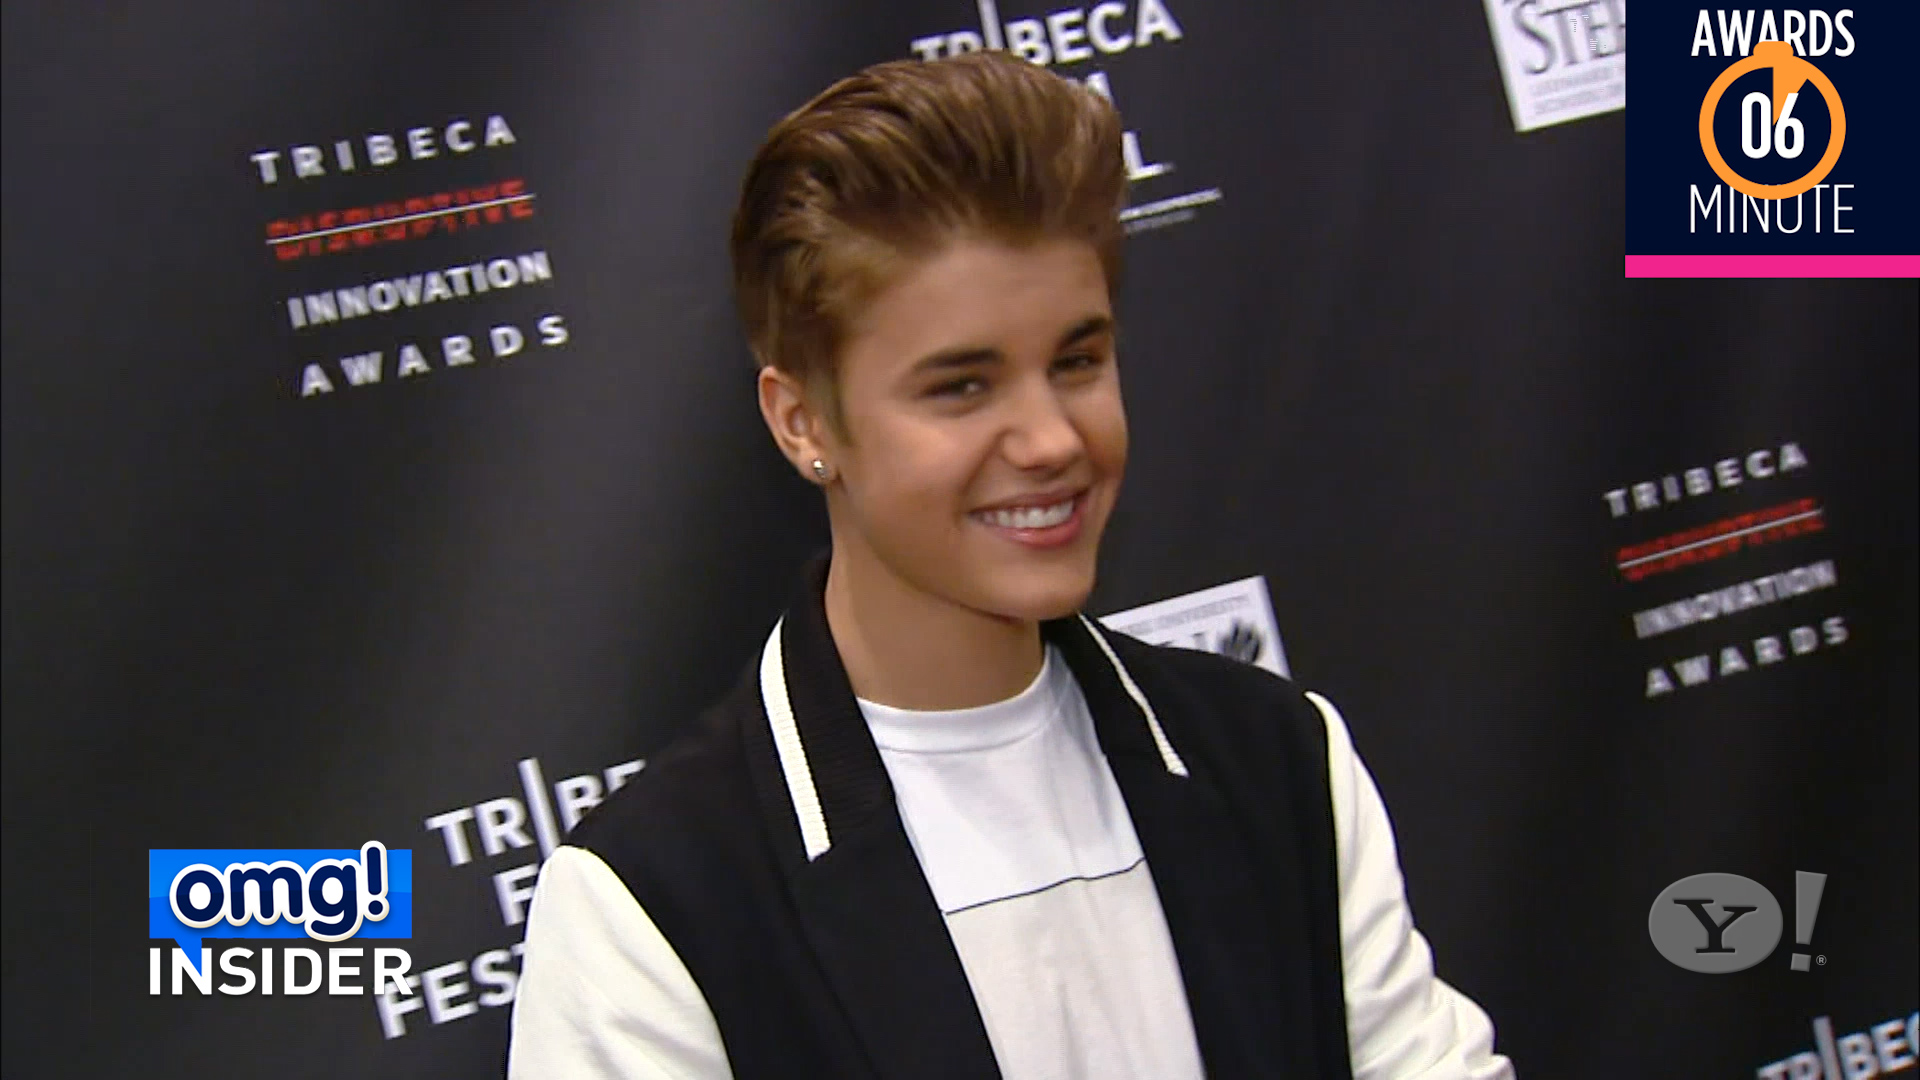 AWARDS MINUTE: Justin Bieber reacts to being left off the Grammy noms